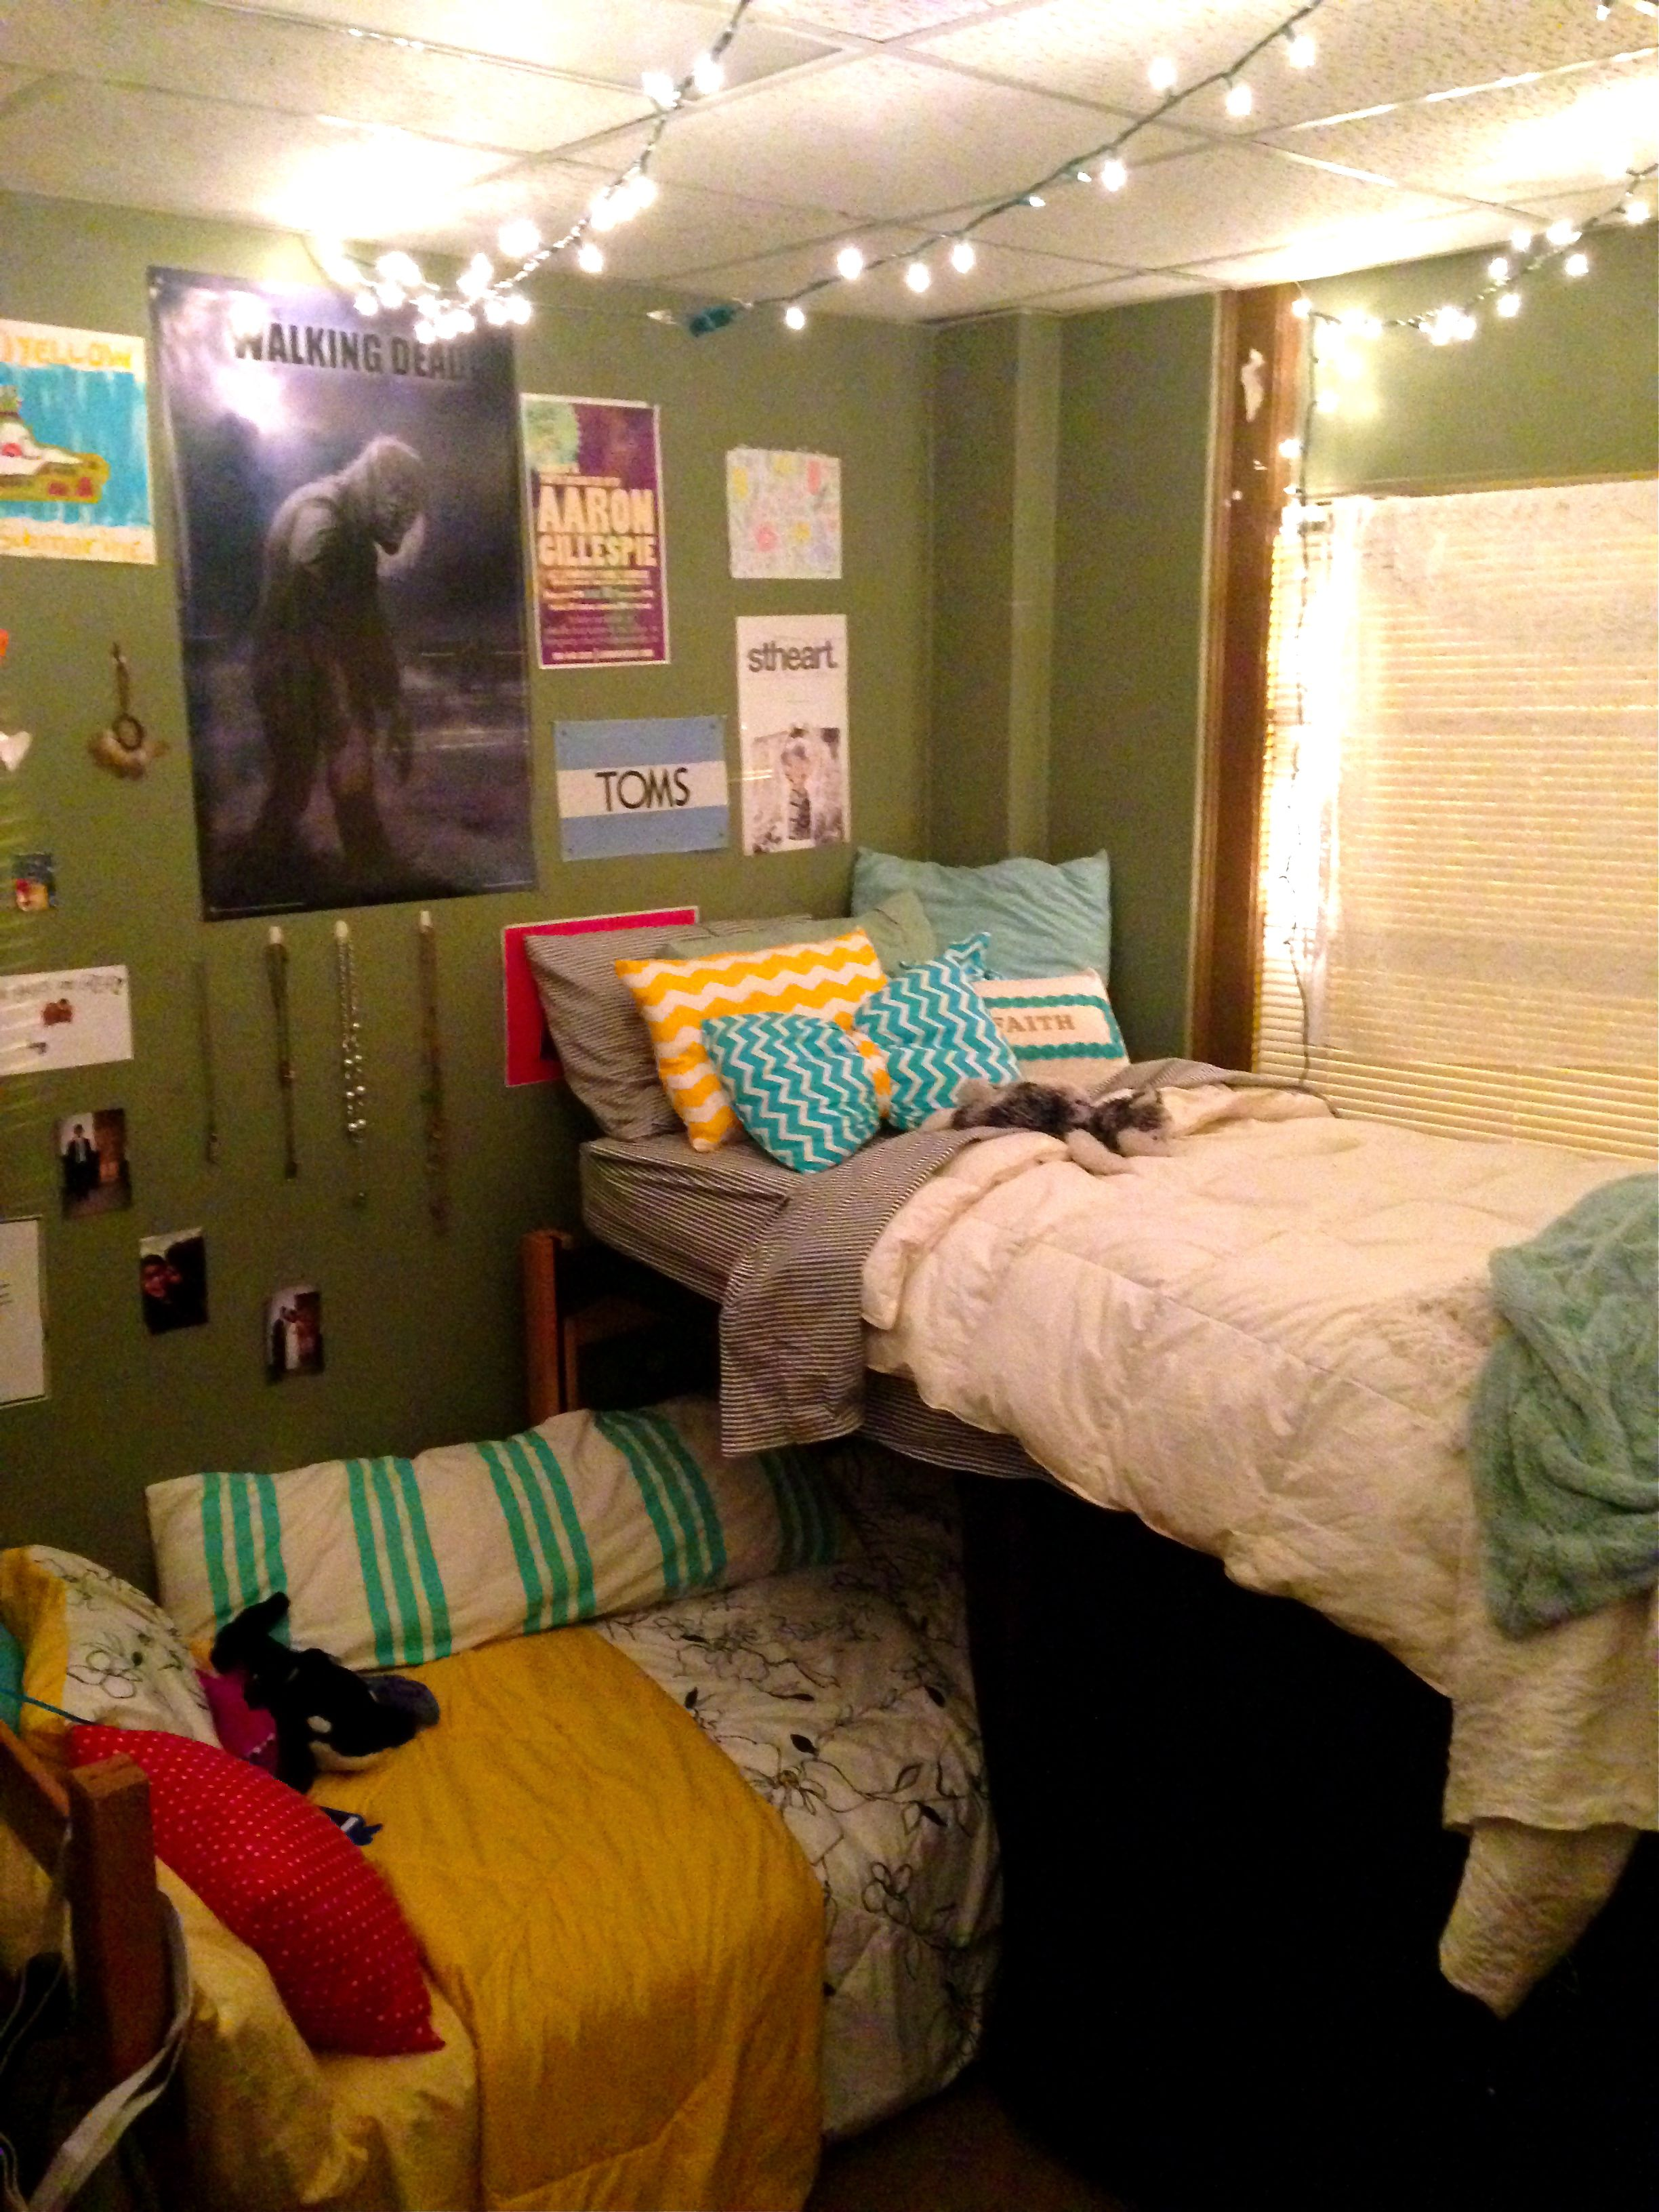 Dorm Room Beds: Layered Bunk Beds, L-shape With Hanging Lights And